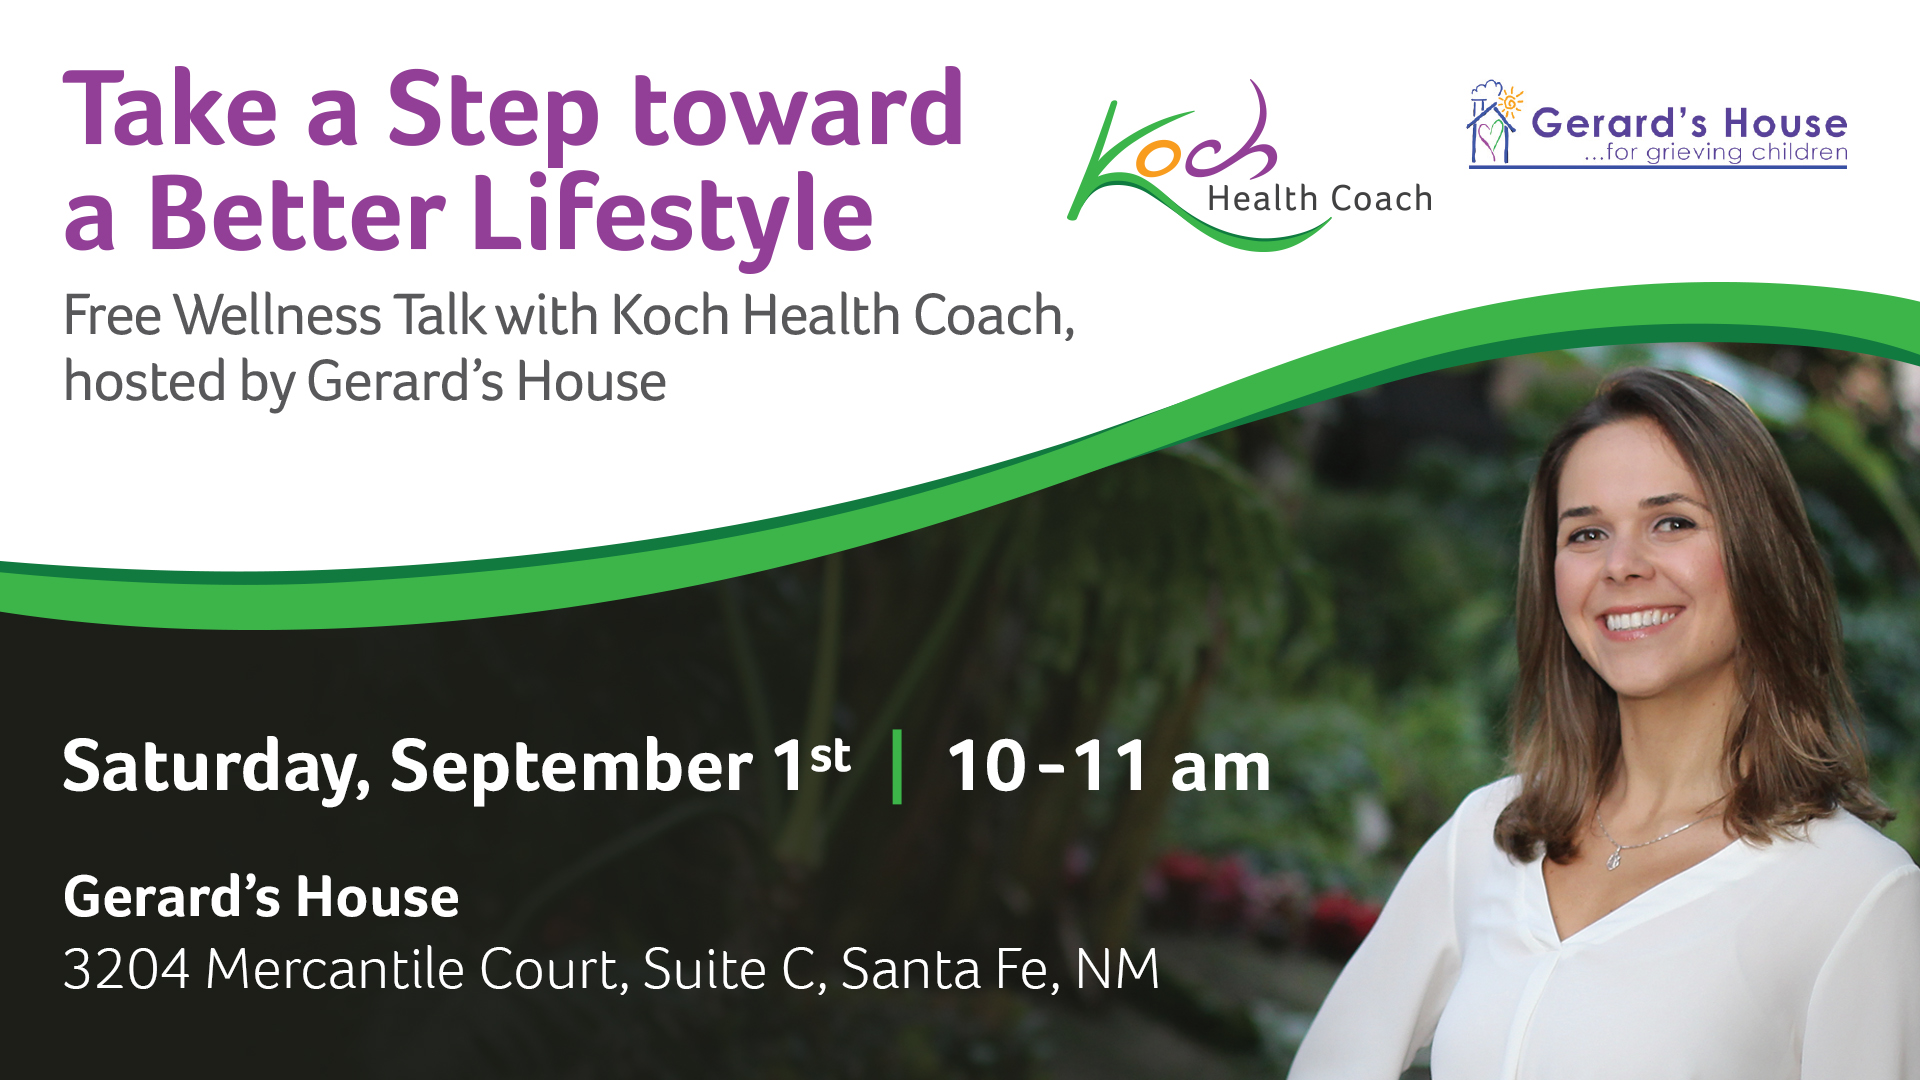 Take a Step toward a Better Lifestyle @ Gerard's House